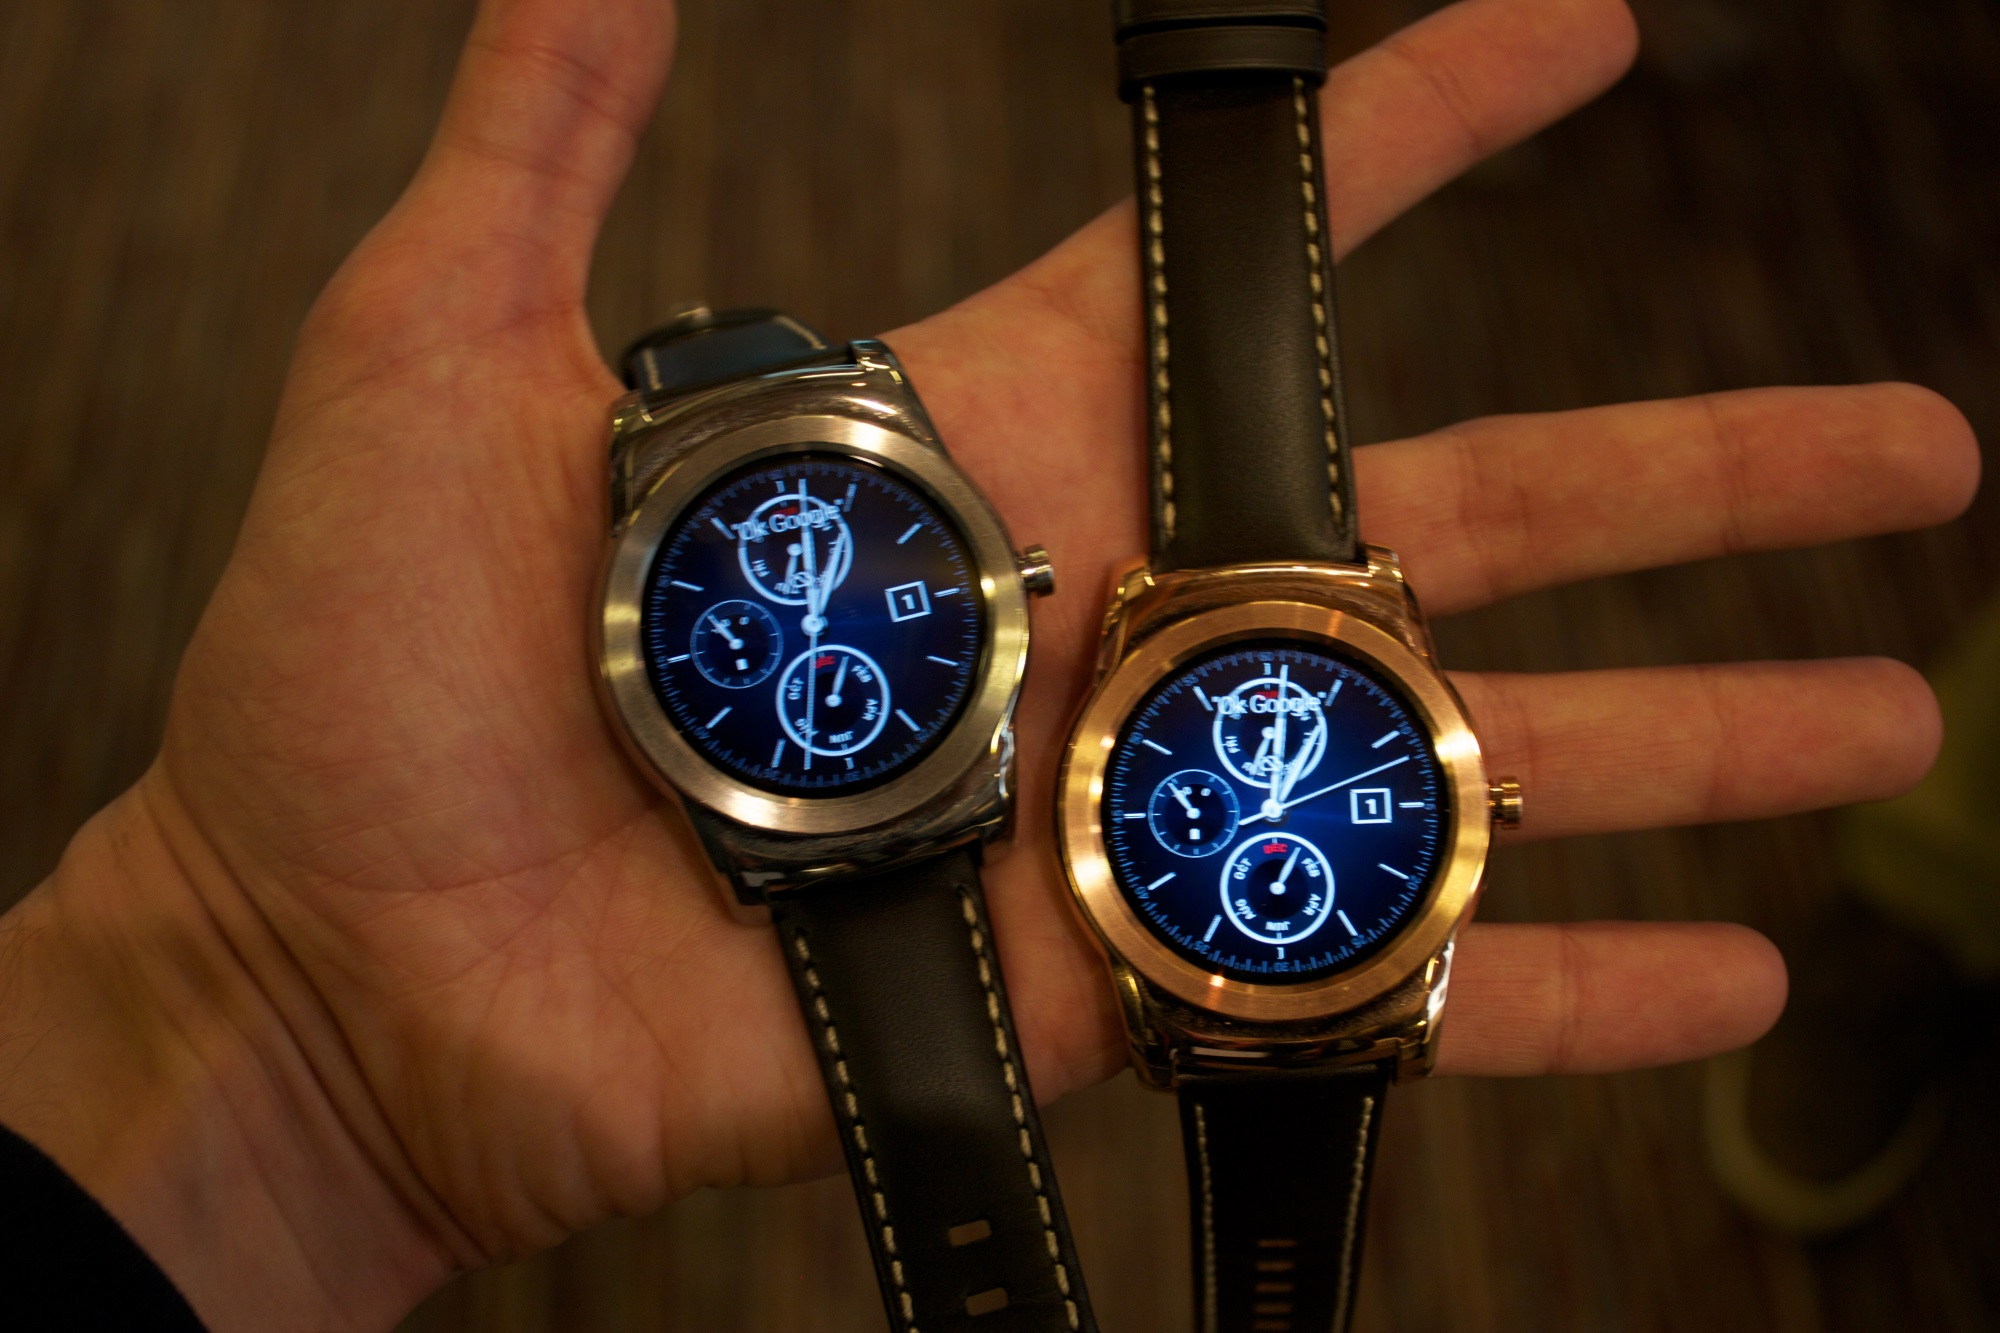 LG Watch Urbane - hands-on (4)